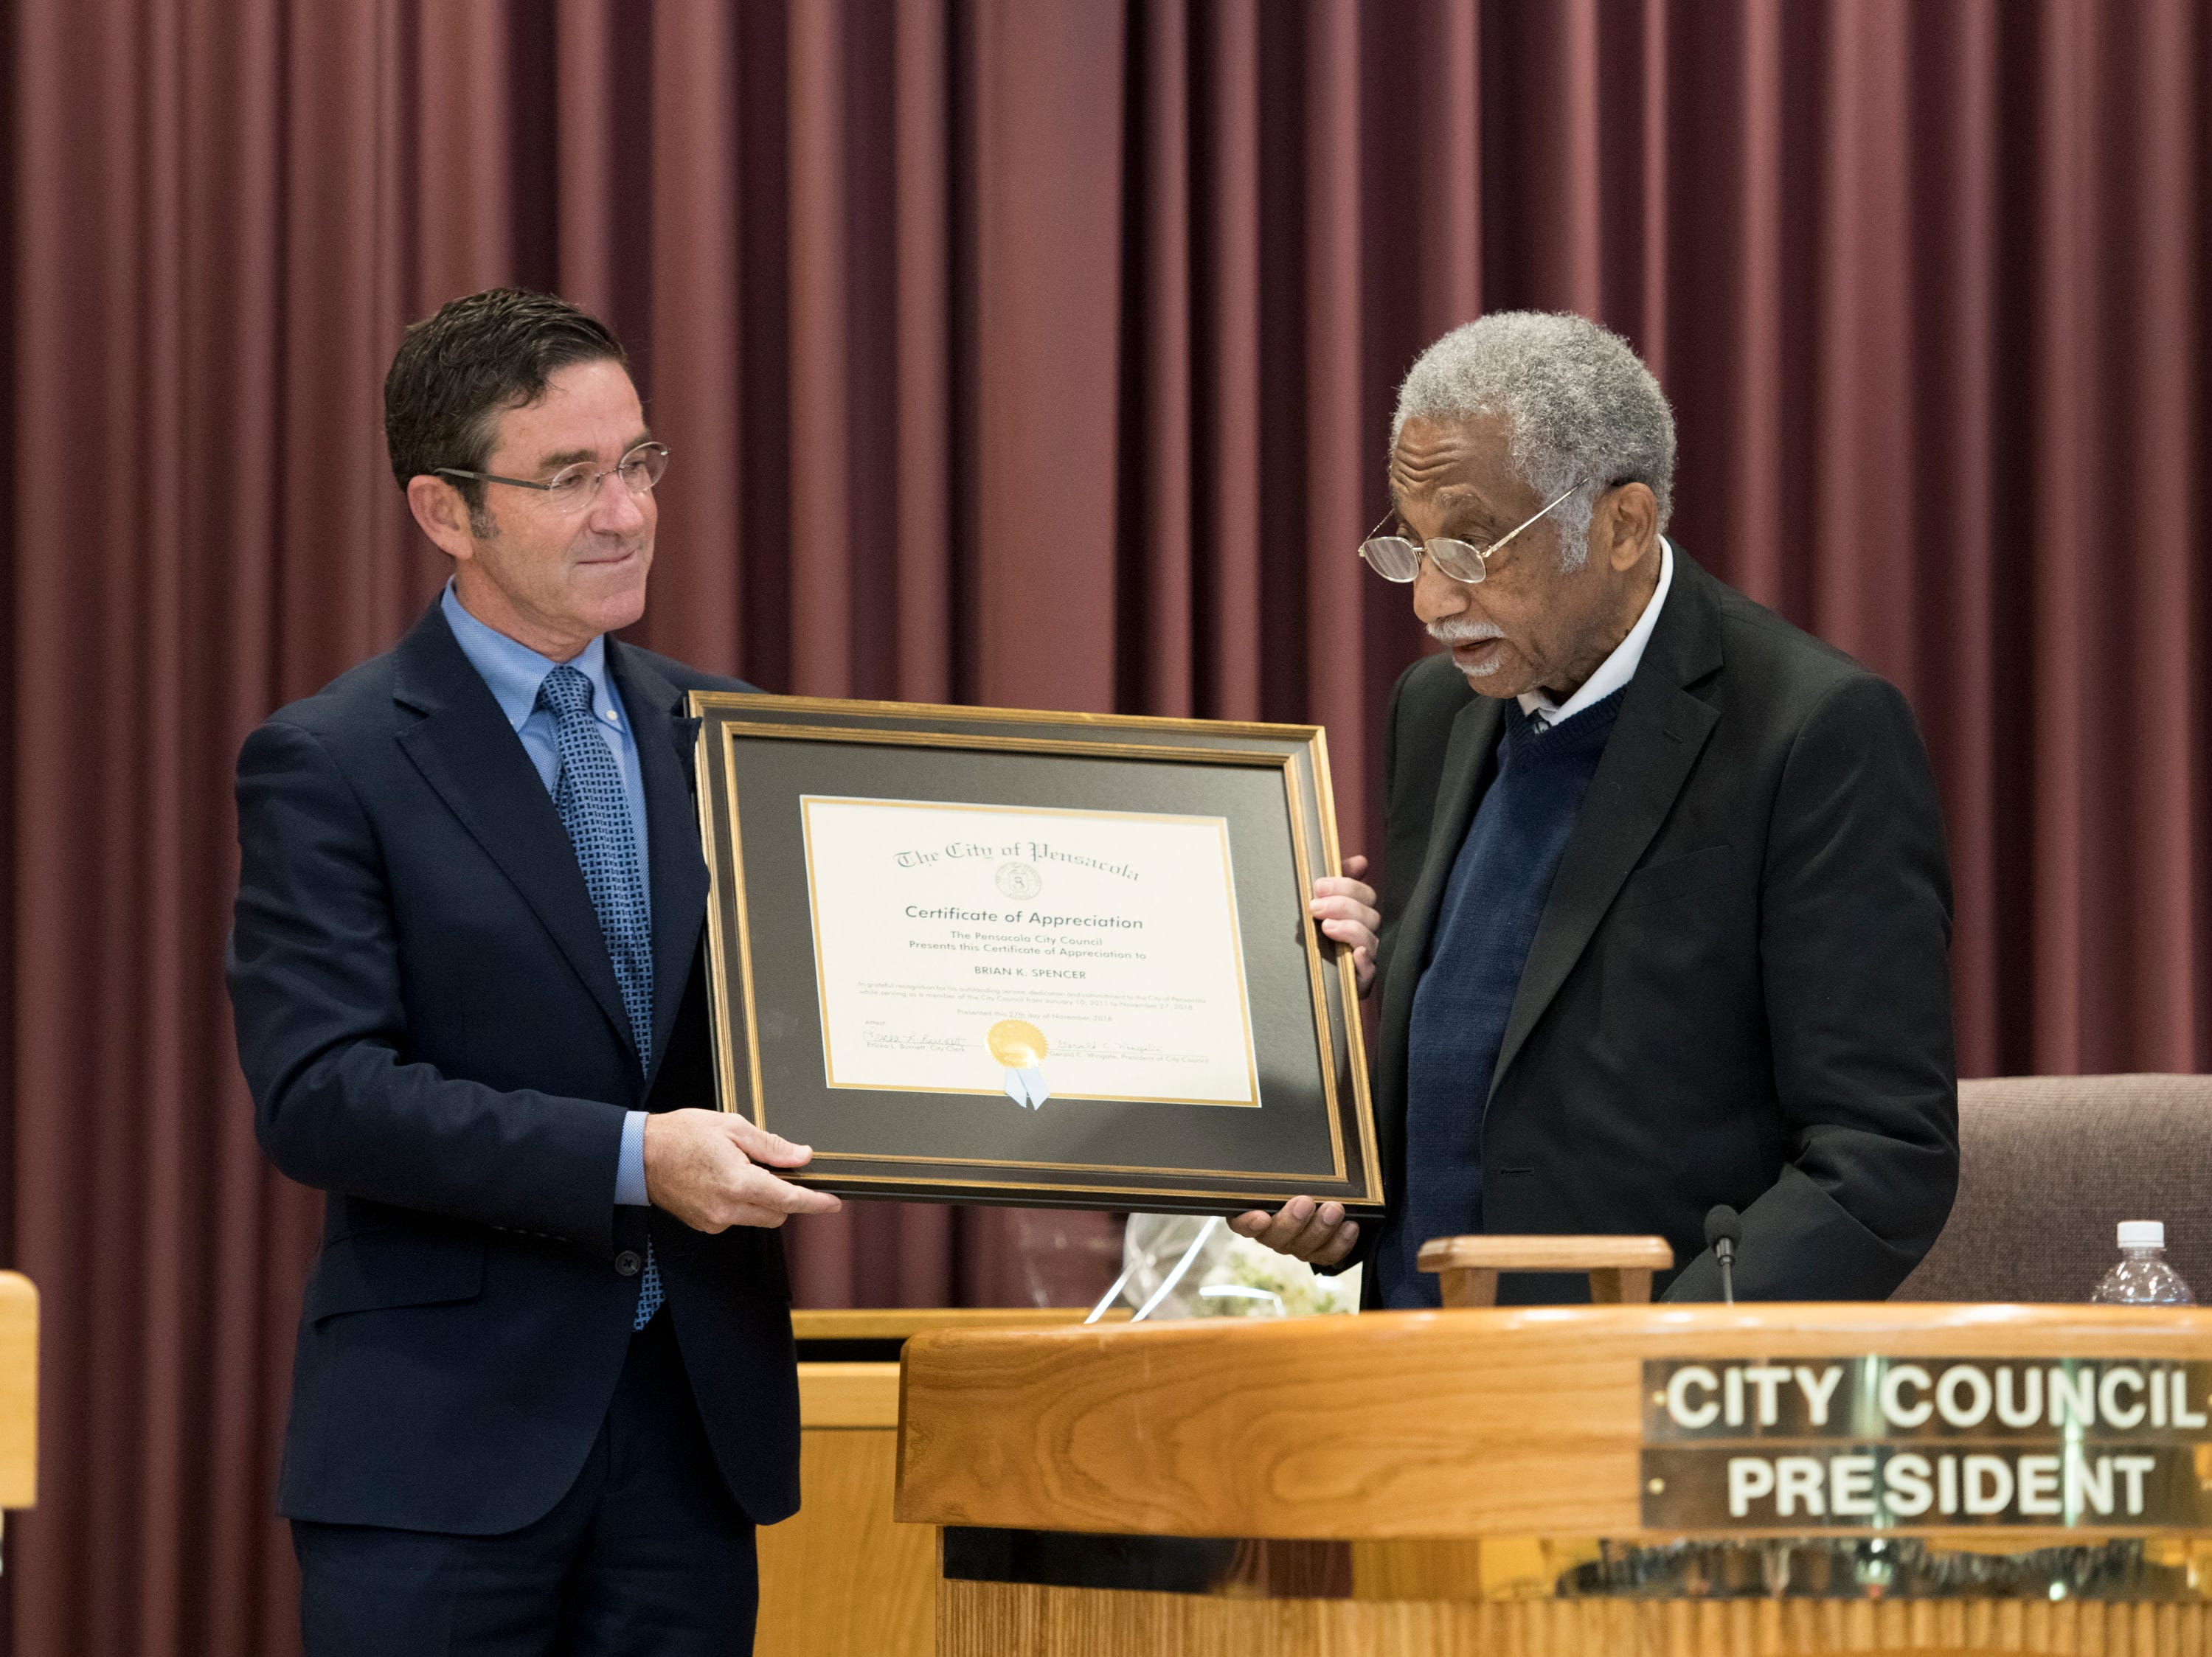 City council president Gerald Wingate, right, presents outgoing council member Brian Spencer a certificate of appreciation prior to the Pensacola City Council and Mayor installation ceremony at City Hall in Pensacola on Tuesday, November 27, 2018.